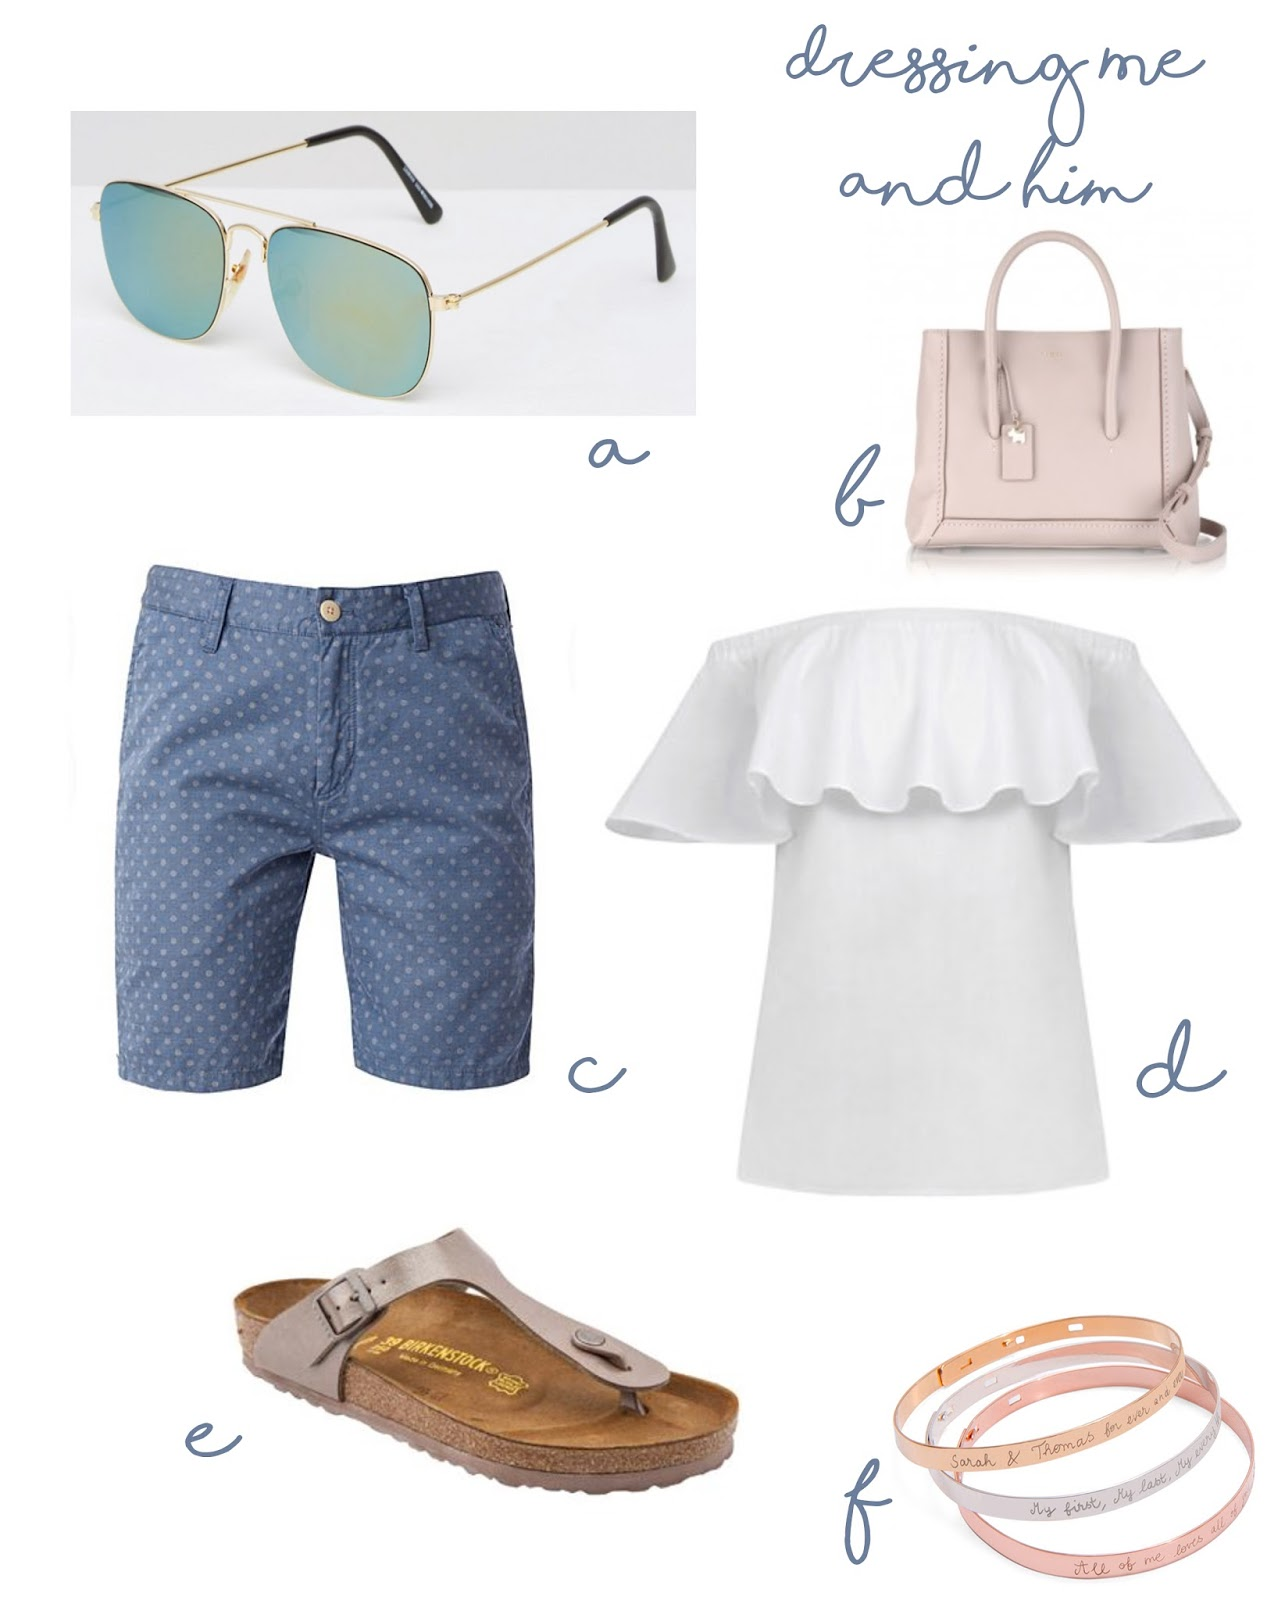 THE BBQ BLUES: NAUTICAL INSPIRATION FOR SUMMER